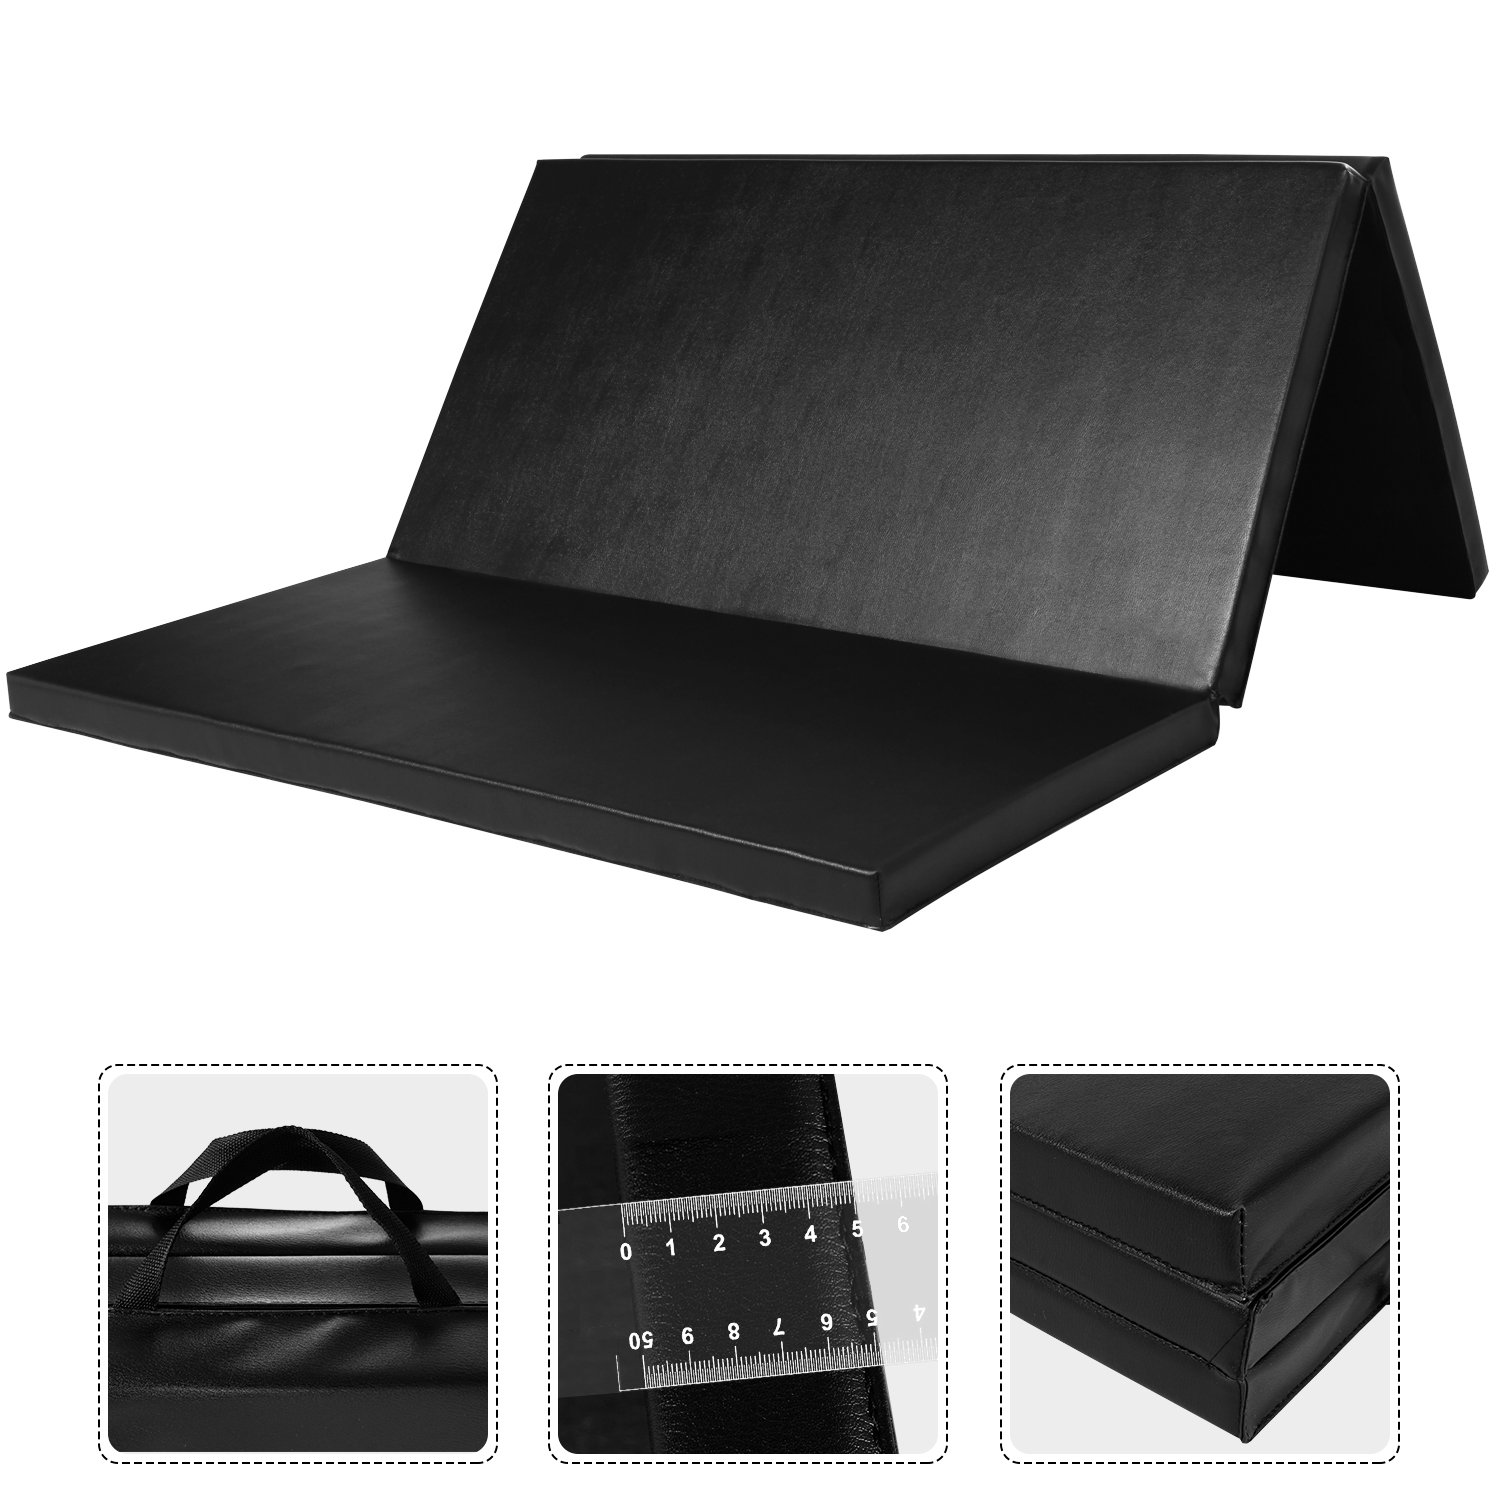 Leapair PU Leather Tri-Fold 2-Inch Thick Exercise  Pad, Black, 4 x 6 Feet